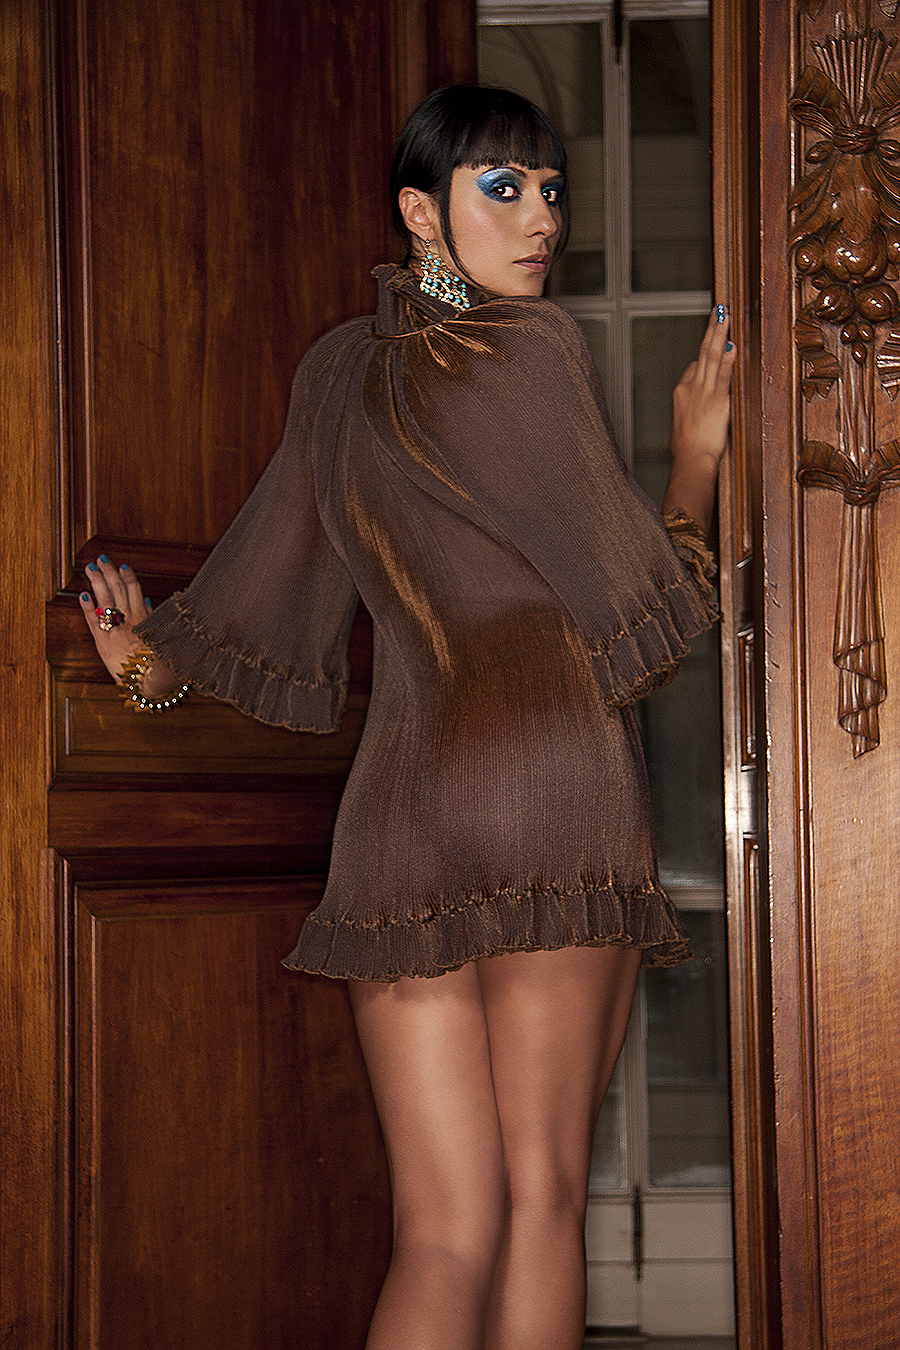 Tony_Ward_fashion_photography_brown_lace_sheer_dress_wood_platform_shoes_blue_eye_shadow_large_rings_elegant_fireplaces_chandeliers_old_mansions_Elkins_Park_estates_model_Carmelita_Martel copy